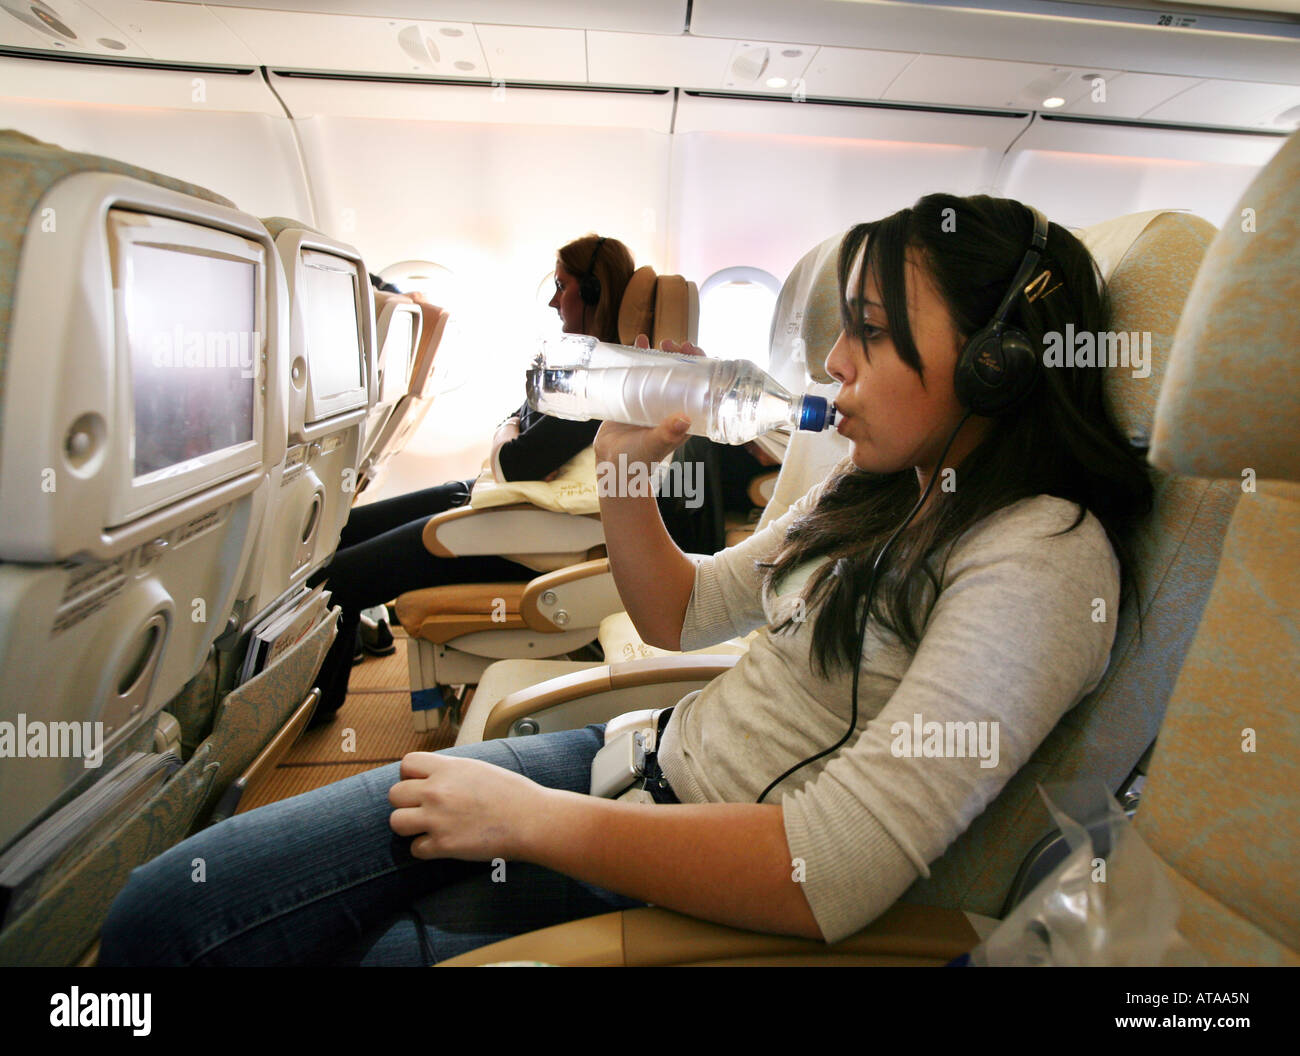 A teenage girl drinks while watching the in-flight entertainment system, Etihad Airways - Stock Image